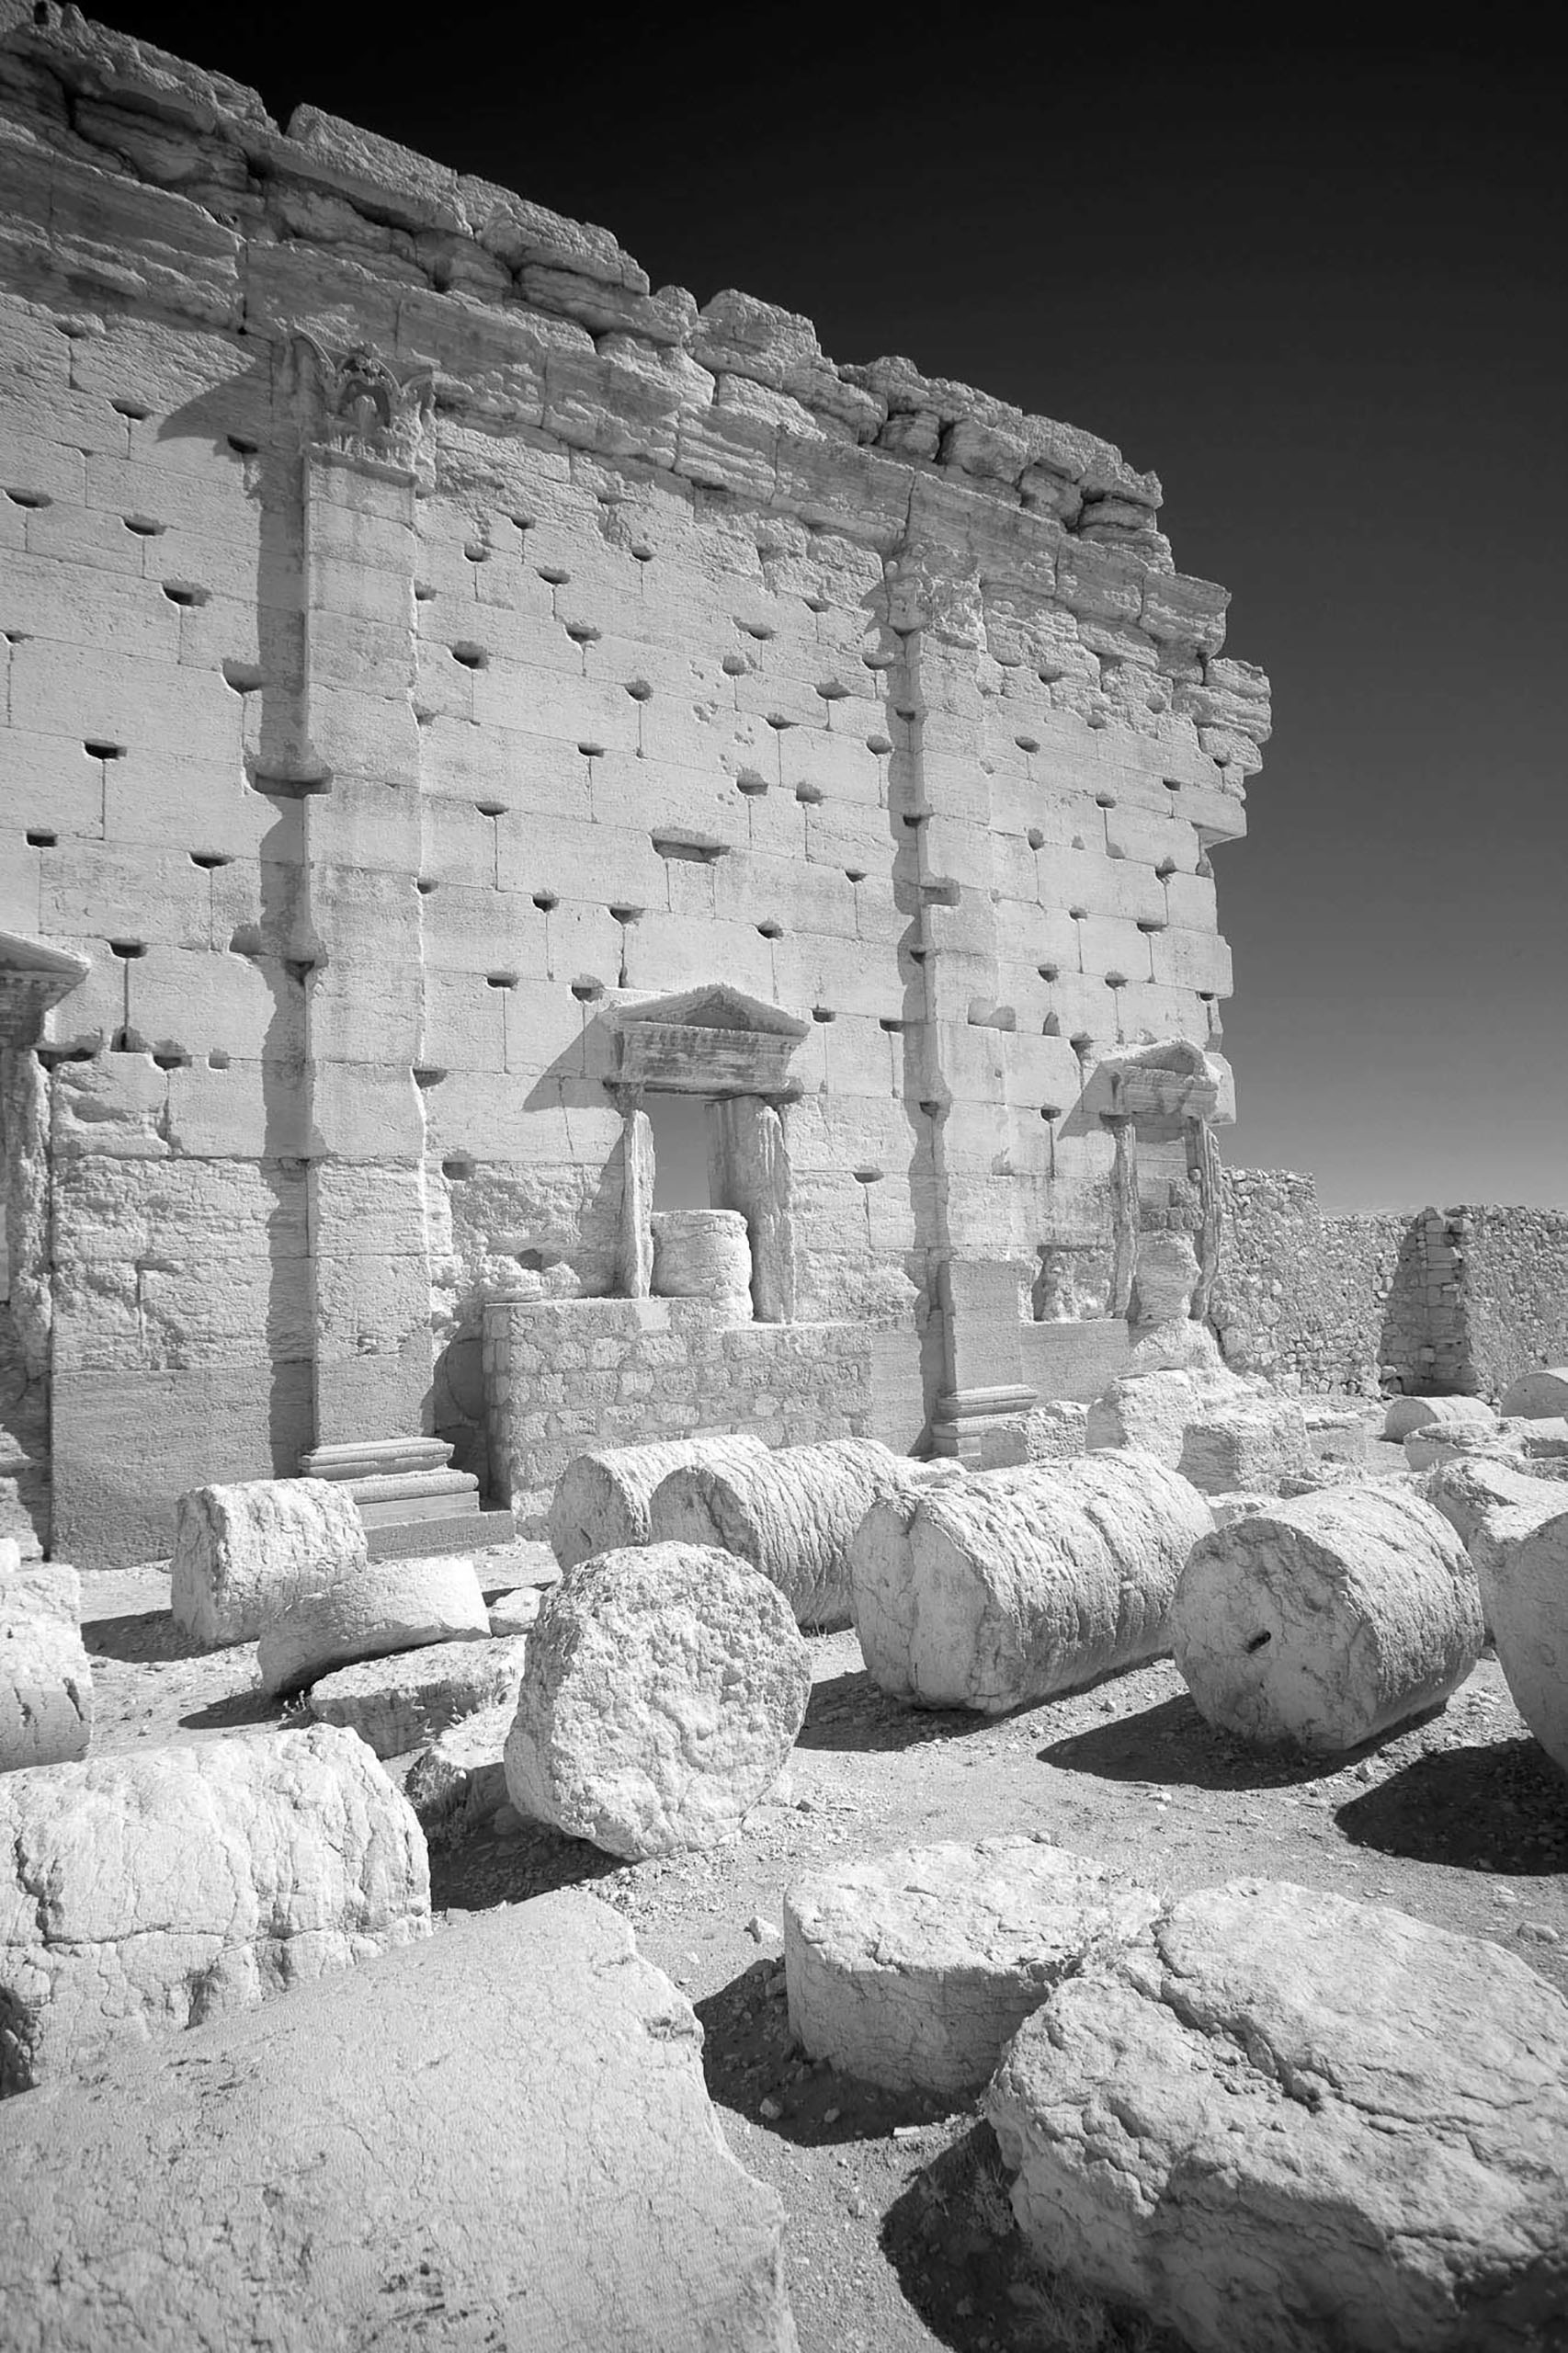 The Temple of Bel ruins were considered among the best preserved at Palmyra.